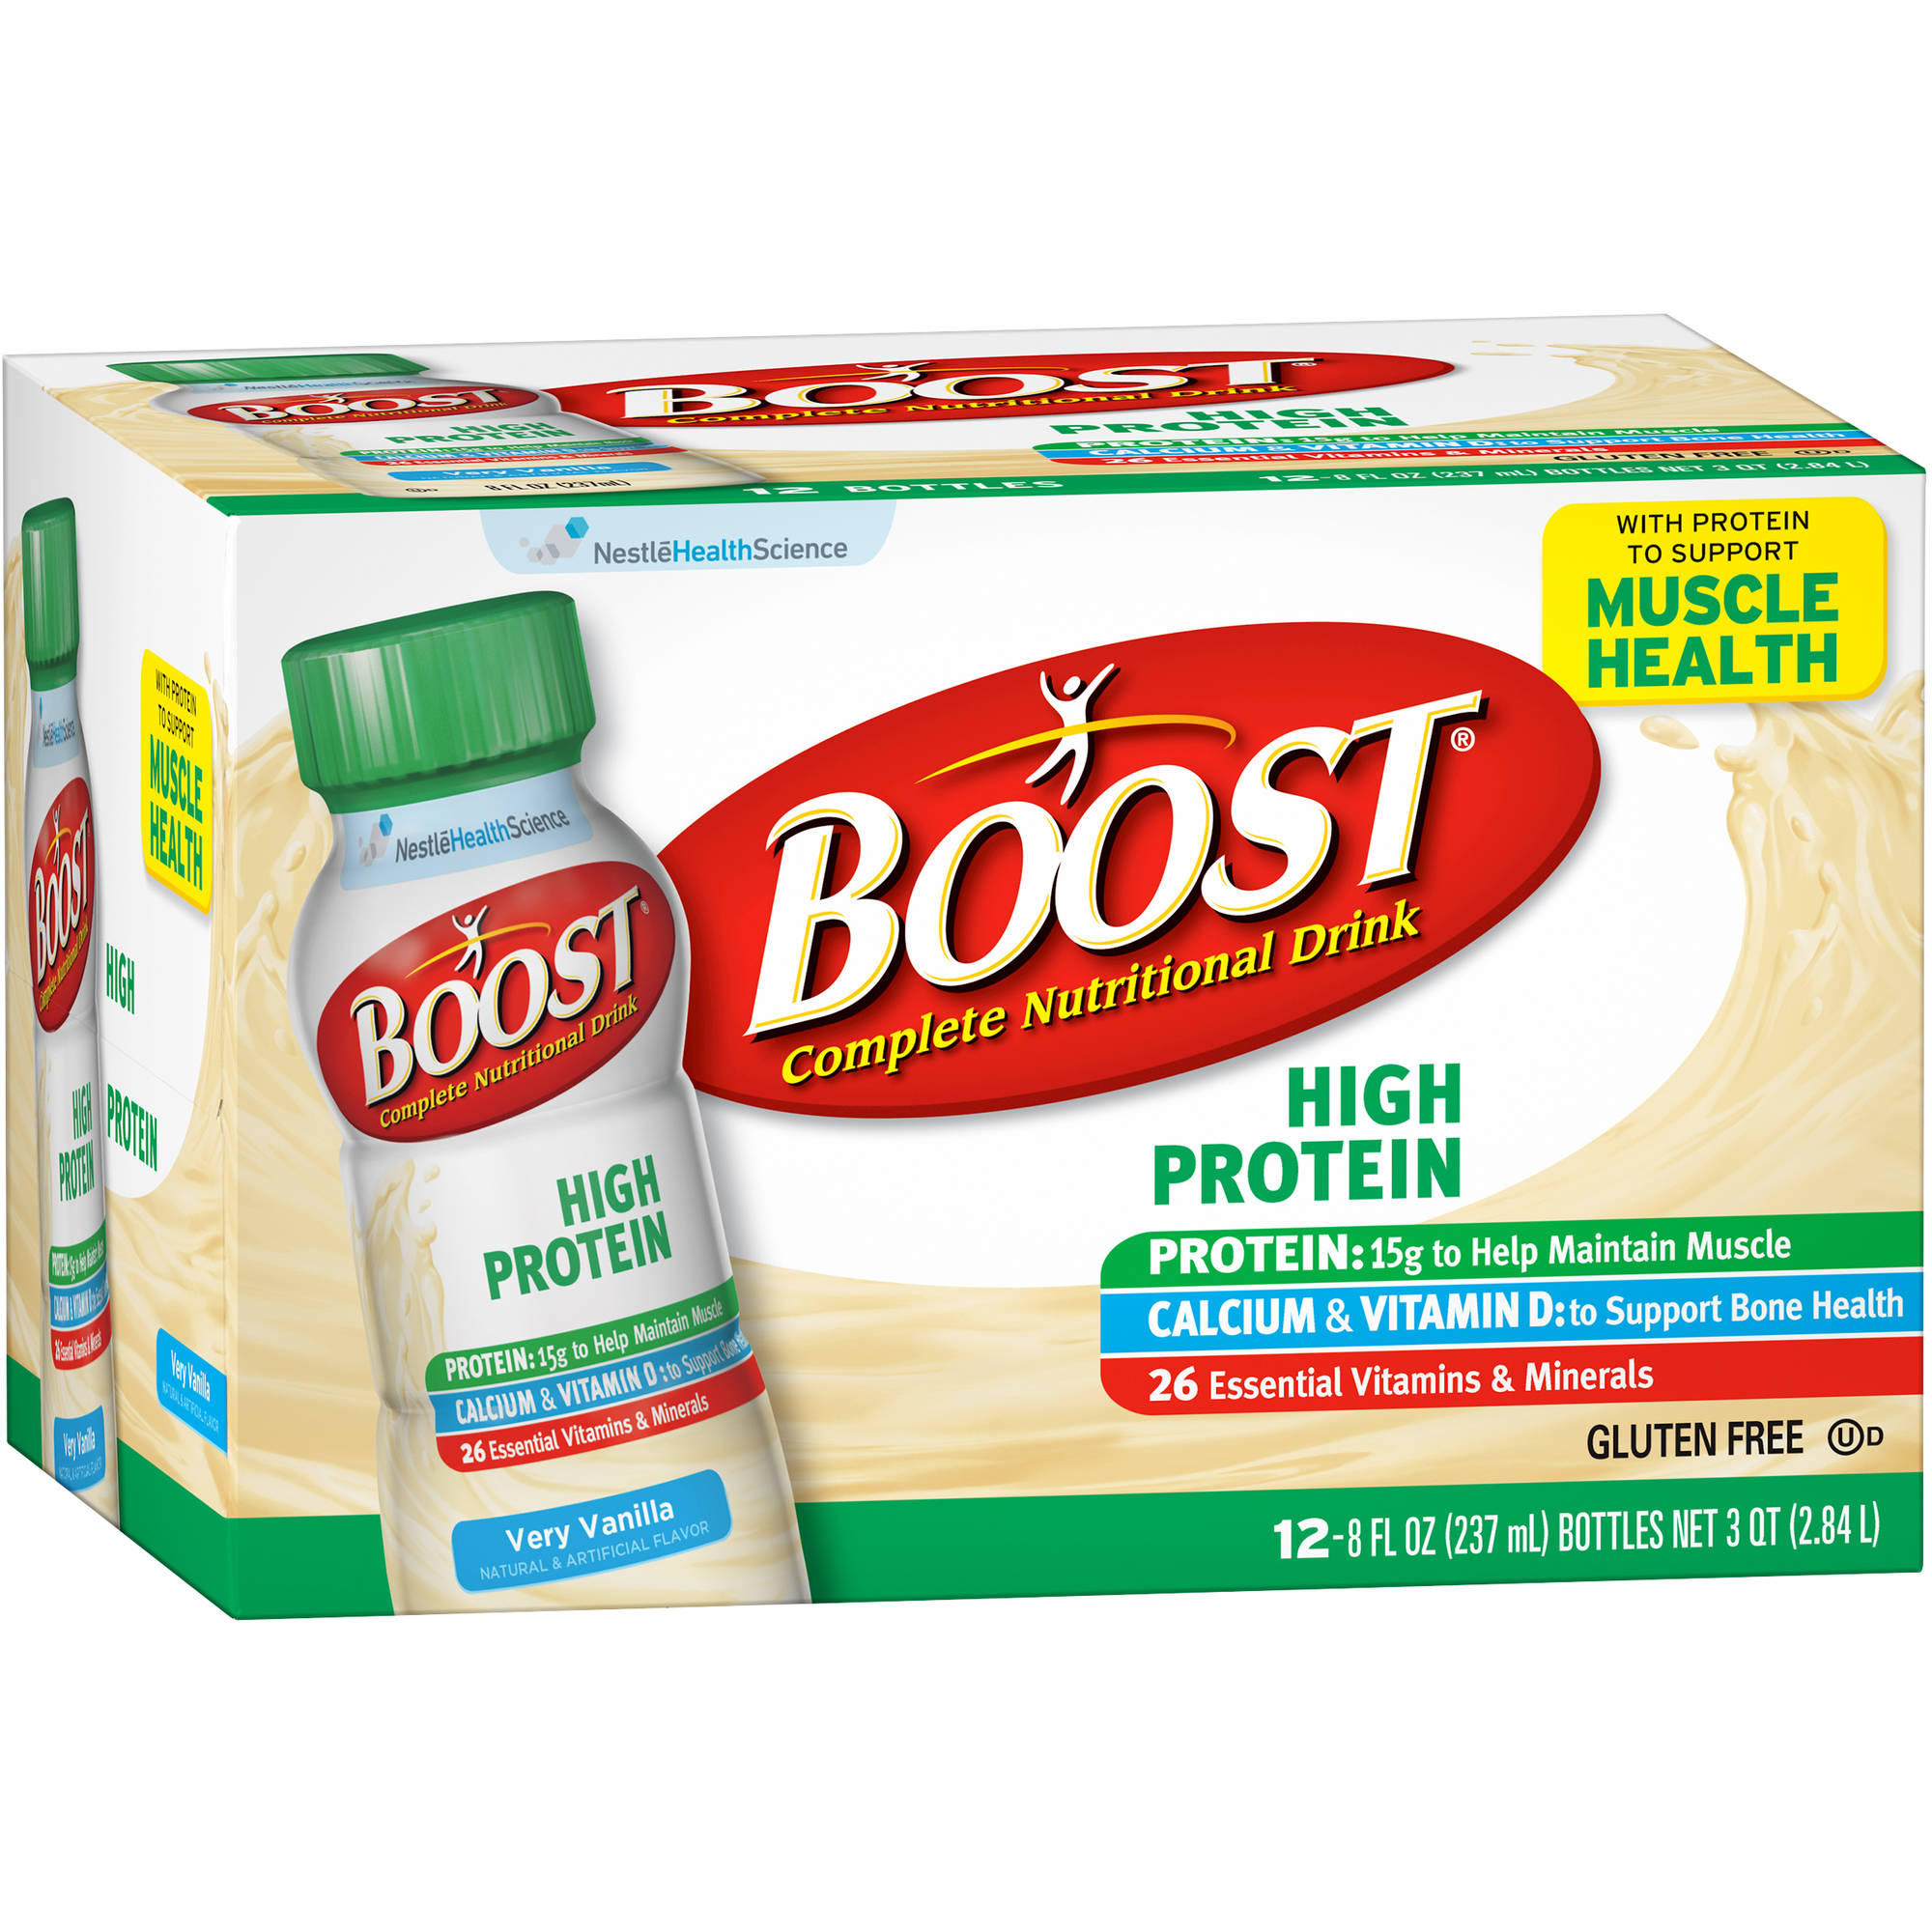 Boost PLUS� Very Vanilla Complete Nutritional Drinks, 8 fl oz, 12 count